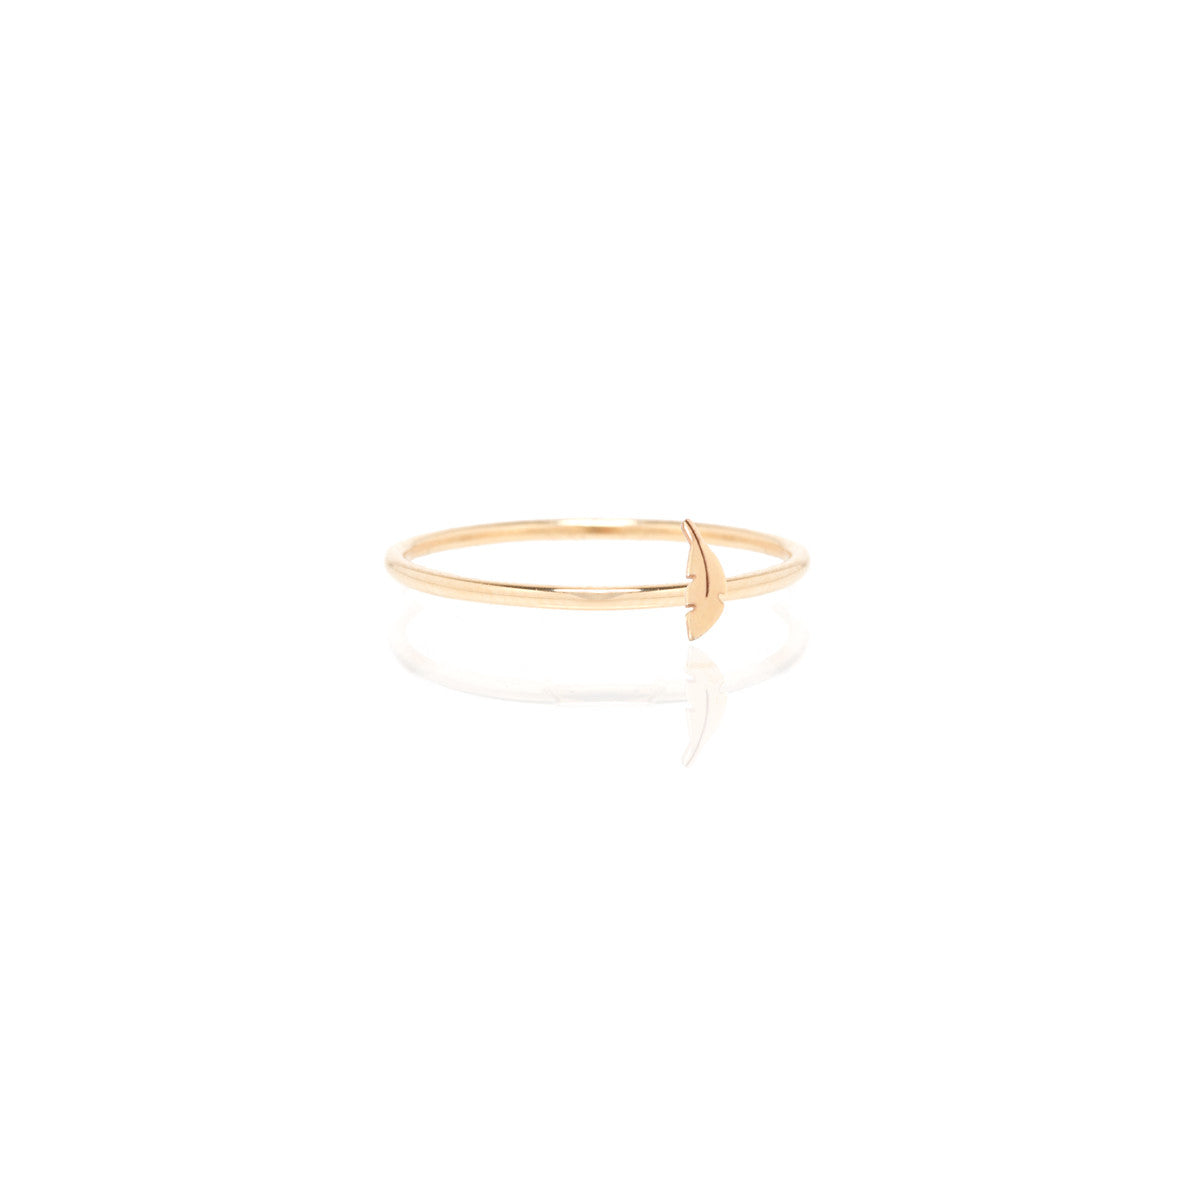 Zoë Chicco 14kt Yellow Gold Itty Bitty Feather Ring